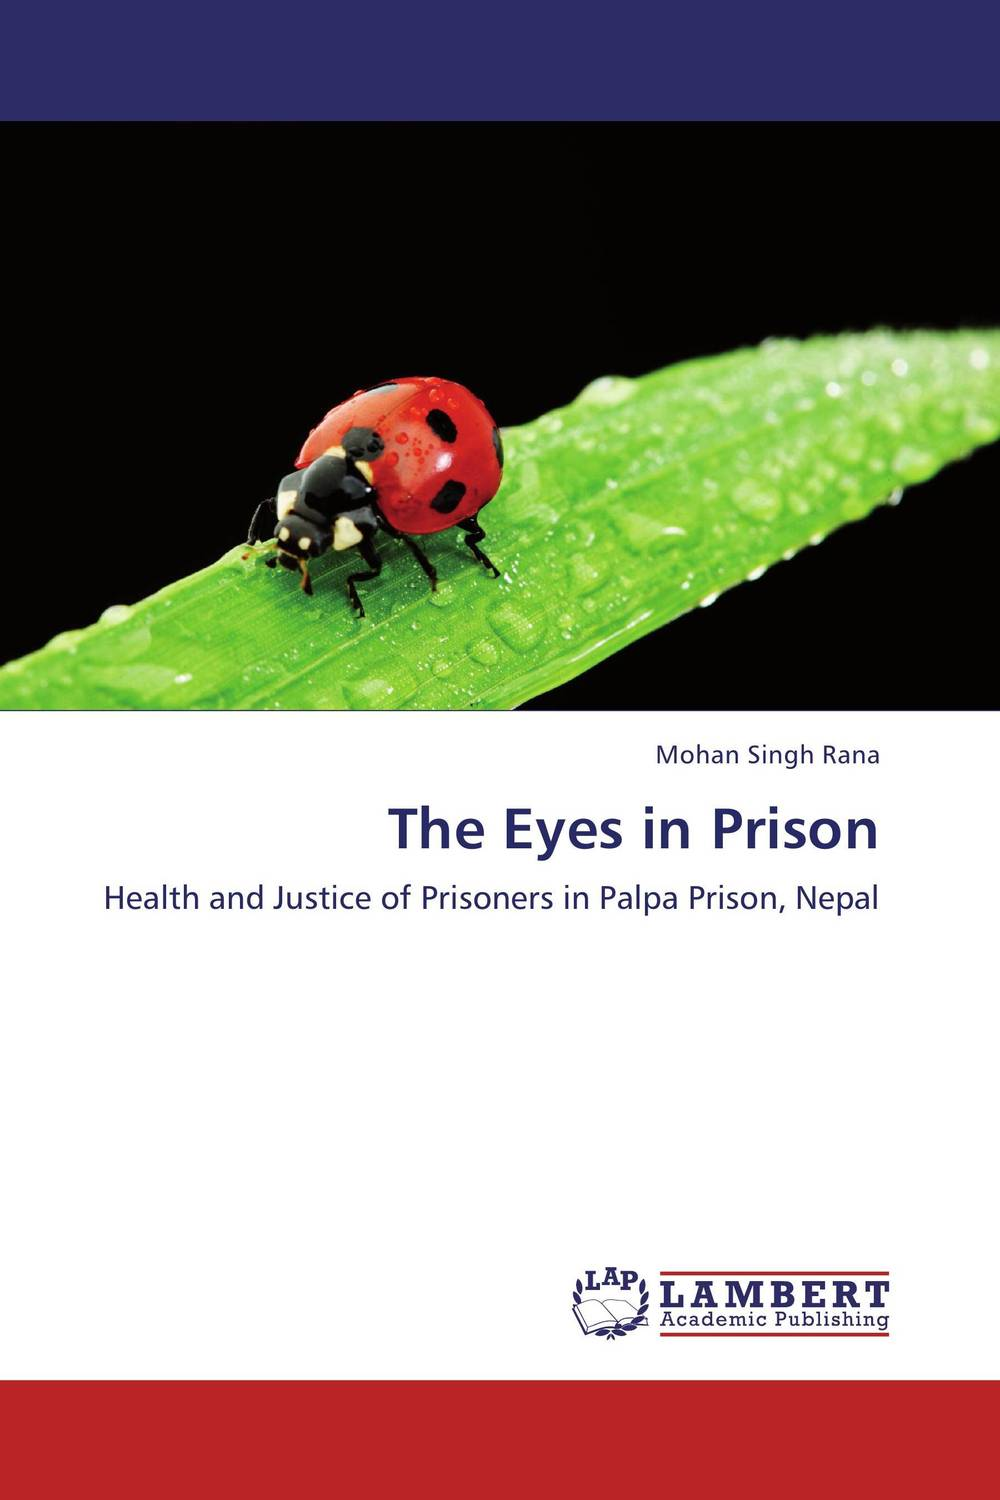 The Eyes in Prison linguistic diversity and social justice